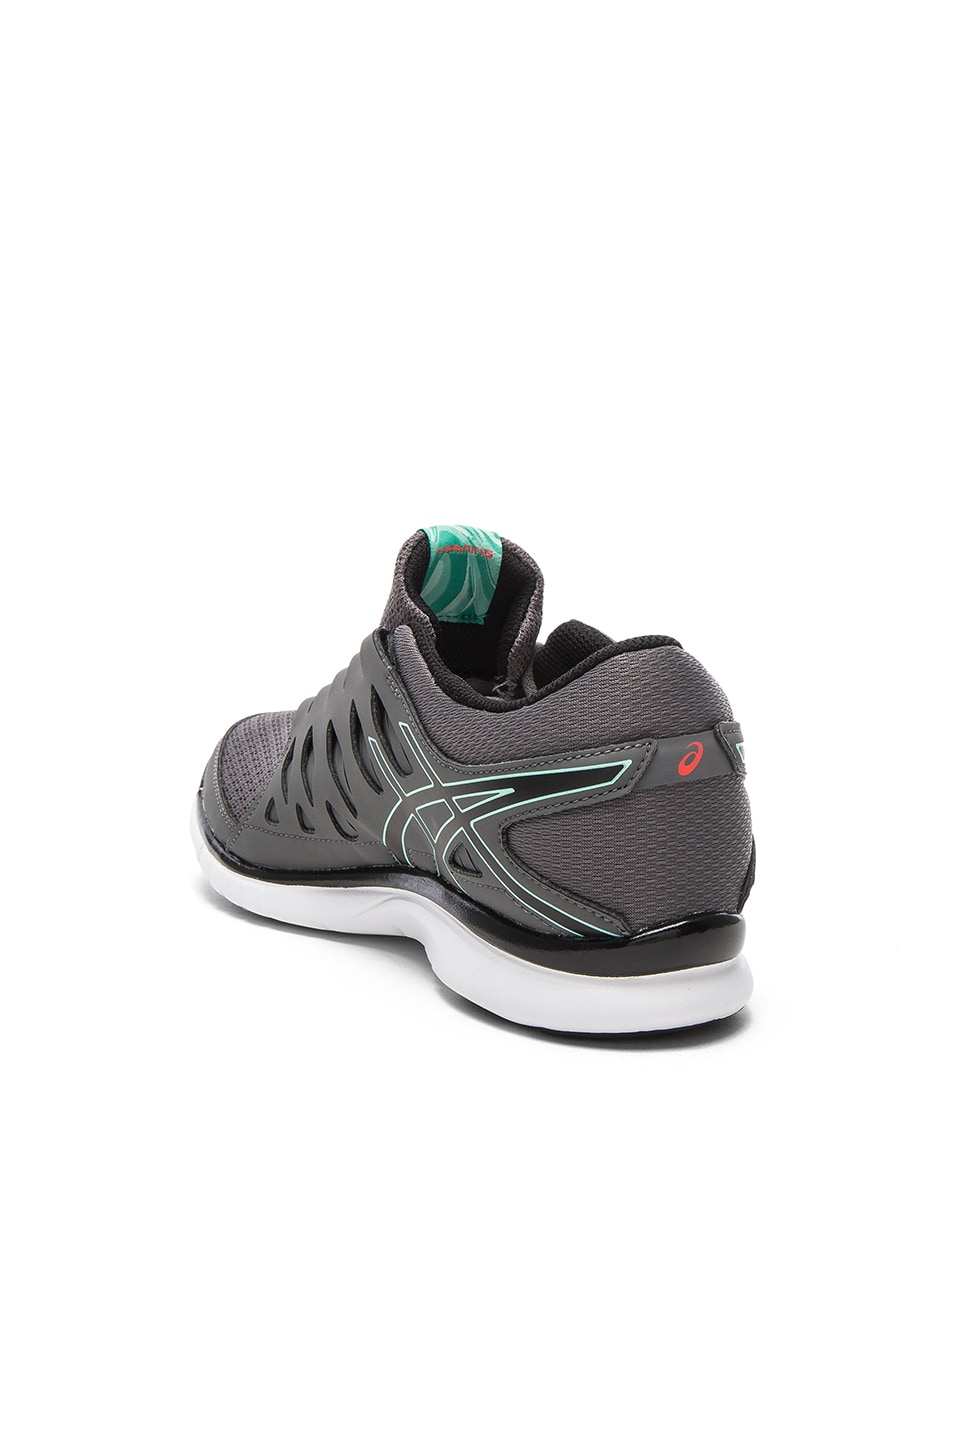 ASICS Leathers GEL FIT TEMPO SNEAKER